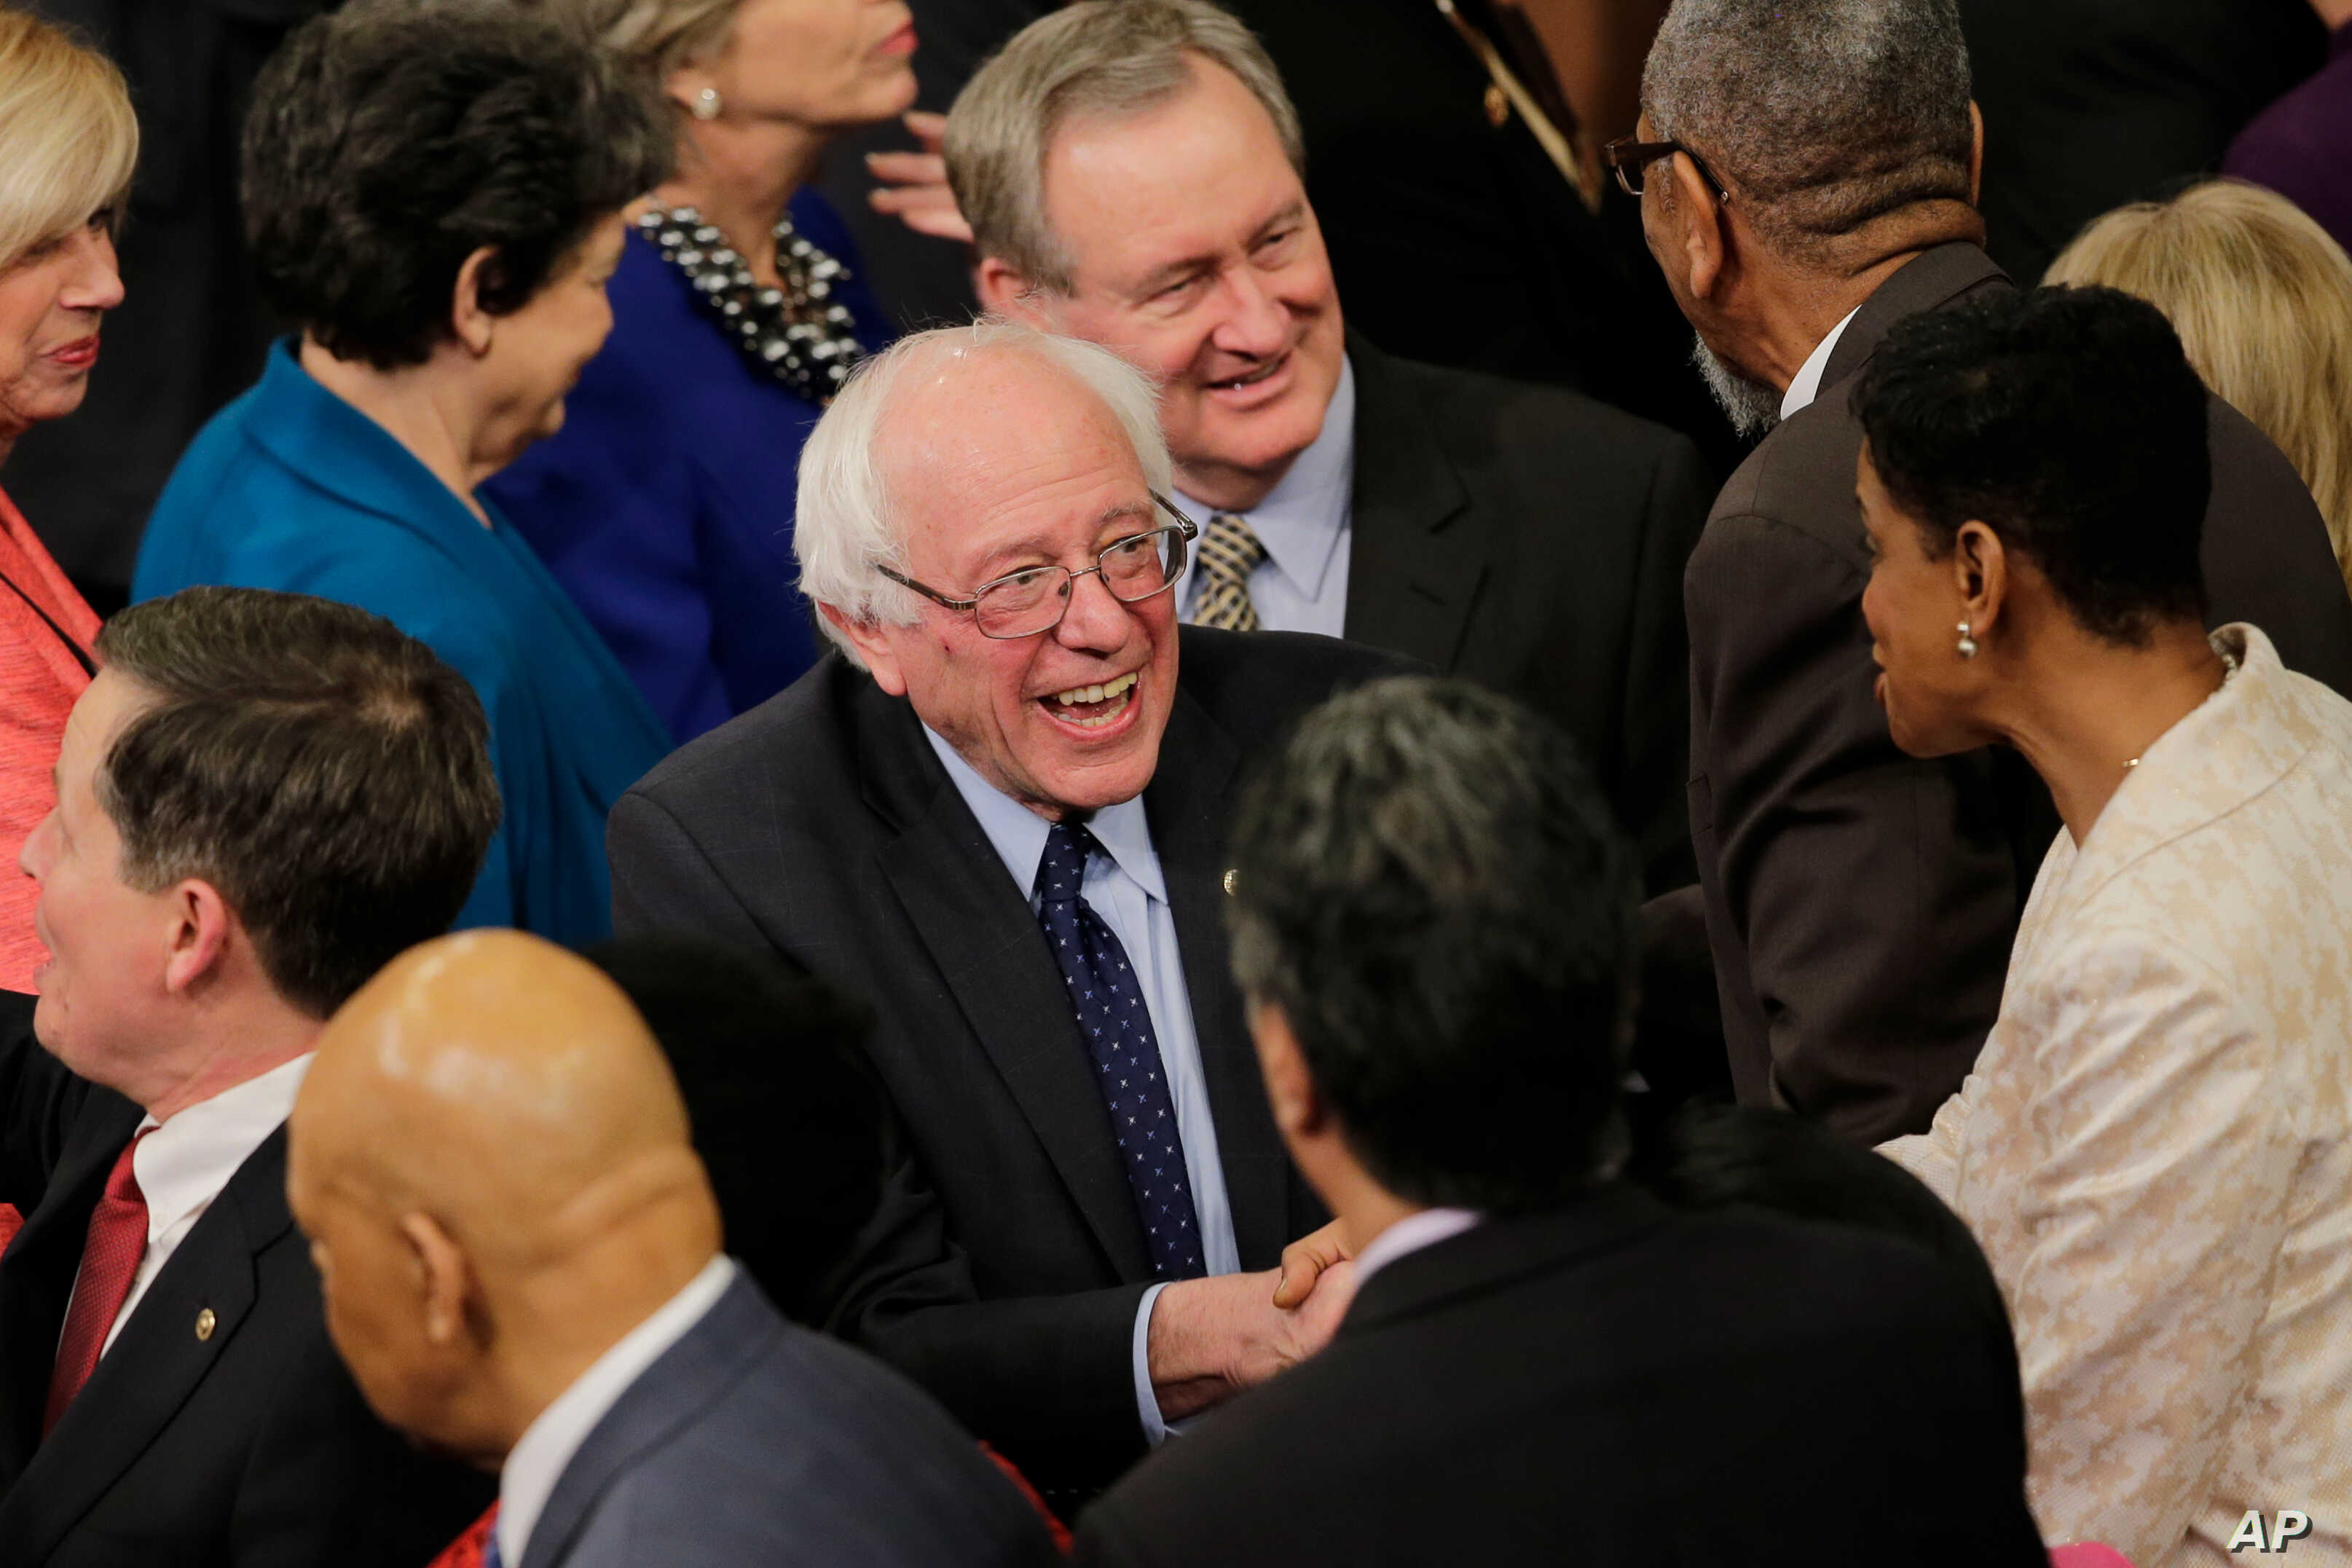 Democratic presidential candidate Sen. Bernie Sanders, I-Vt. arrives on Capitol Hill in Washington, Tuesday, Jan. 12, 2016, for President Barack Obama's State of the Union address before a joint session of Congress .